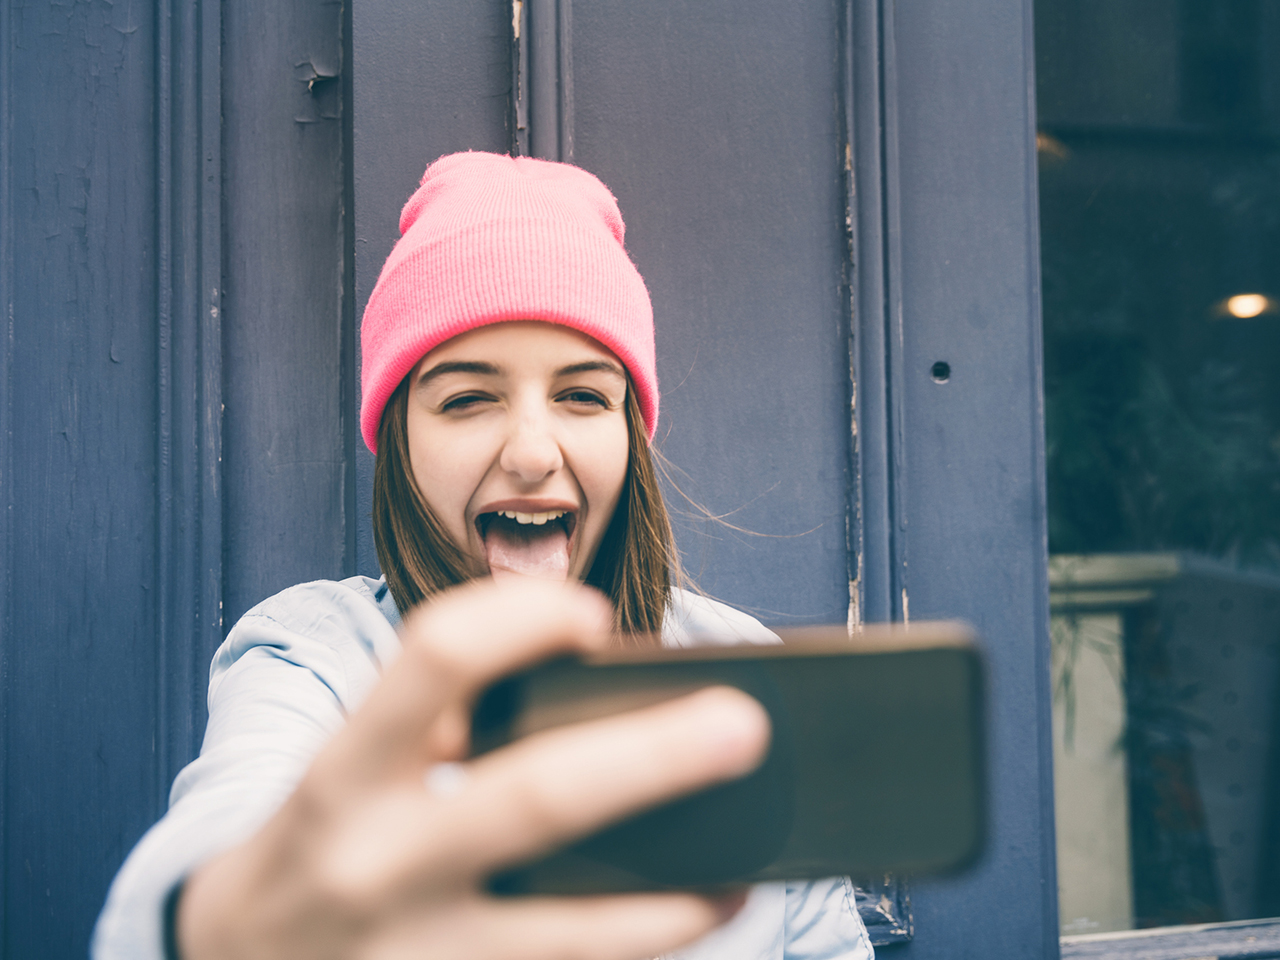 teen girl in a pink knit hat holds her phone out in front of her to take a selfie.